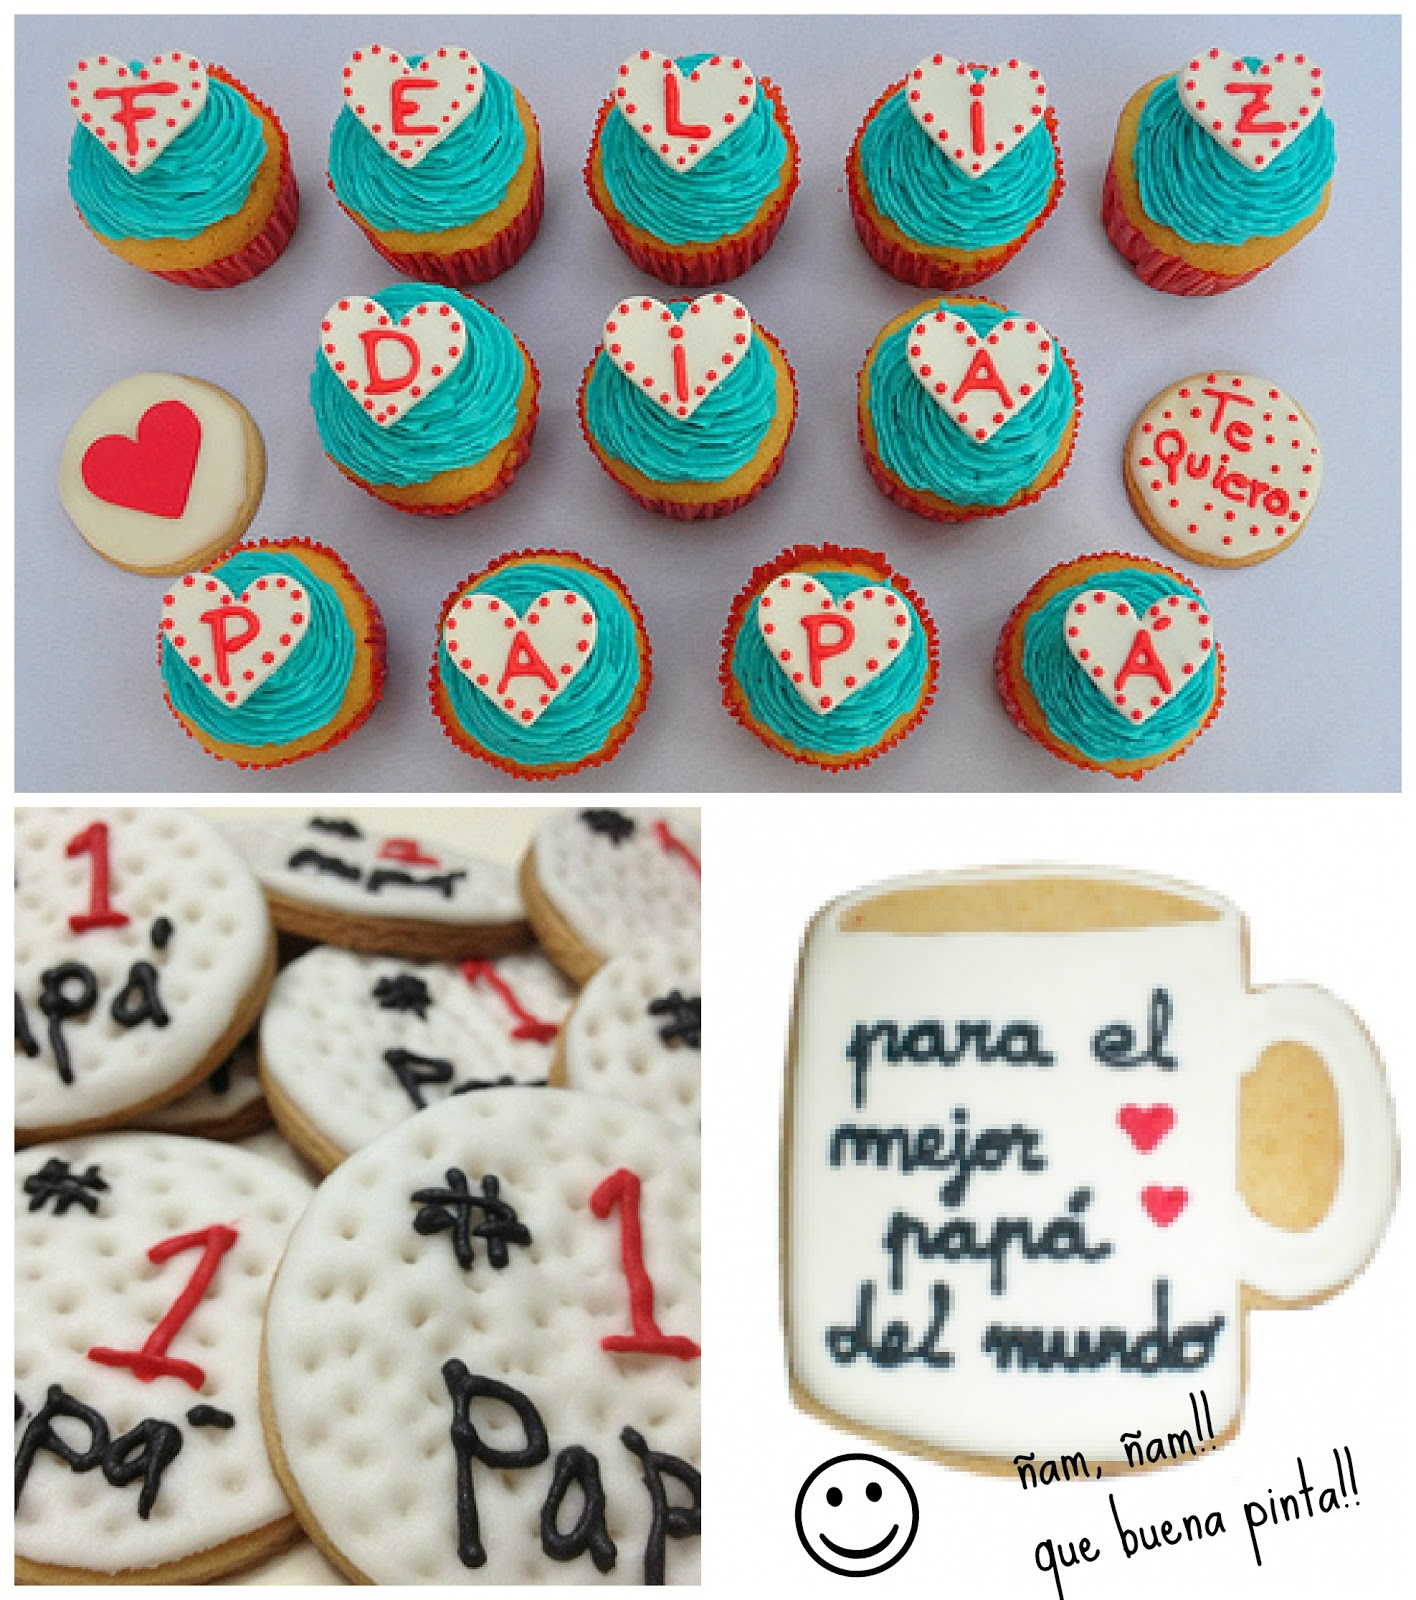 Lovers crafts ideas para regalar el d a del padre - Ideas de regalos para padres ...